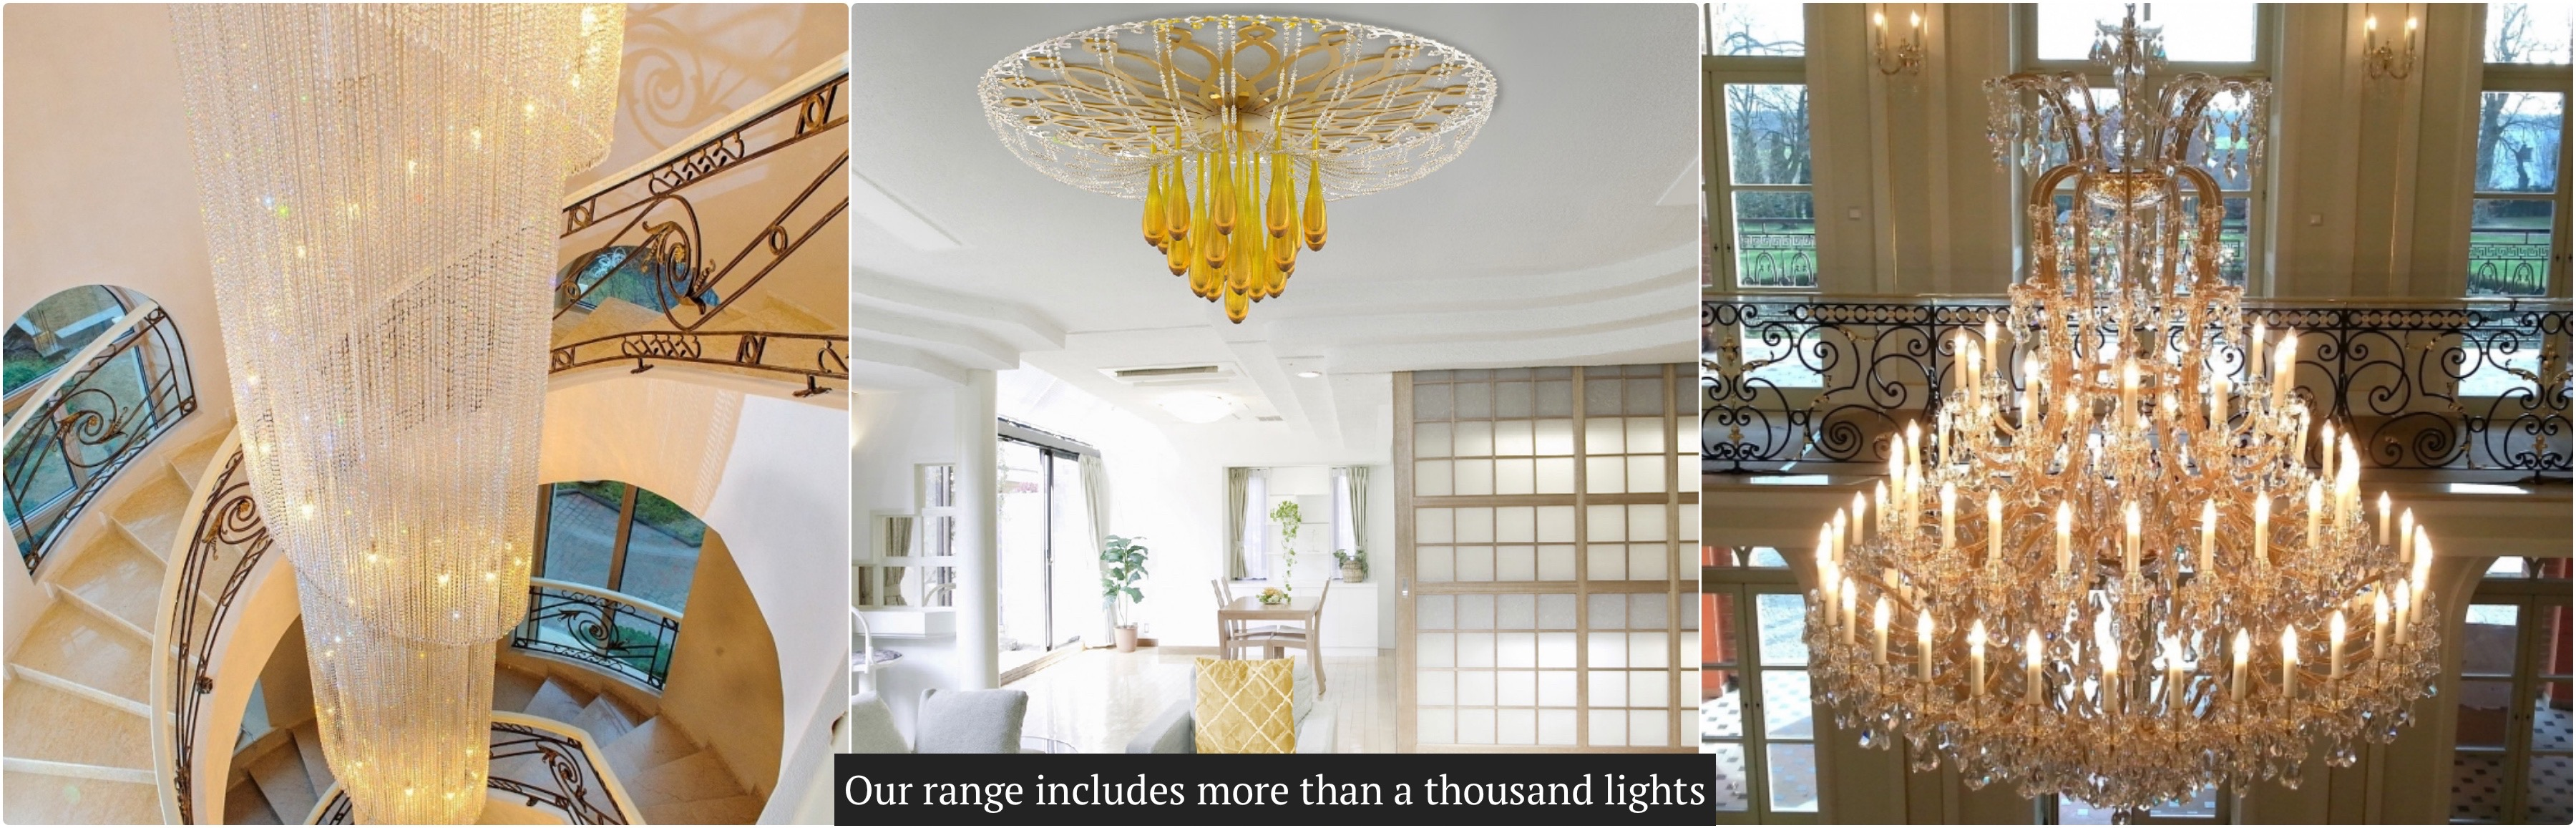 Our range includes more than a thousand lights